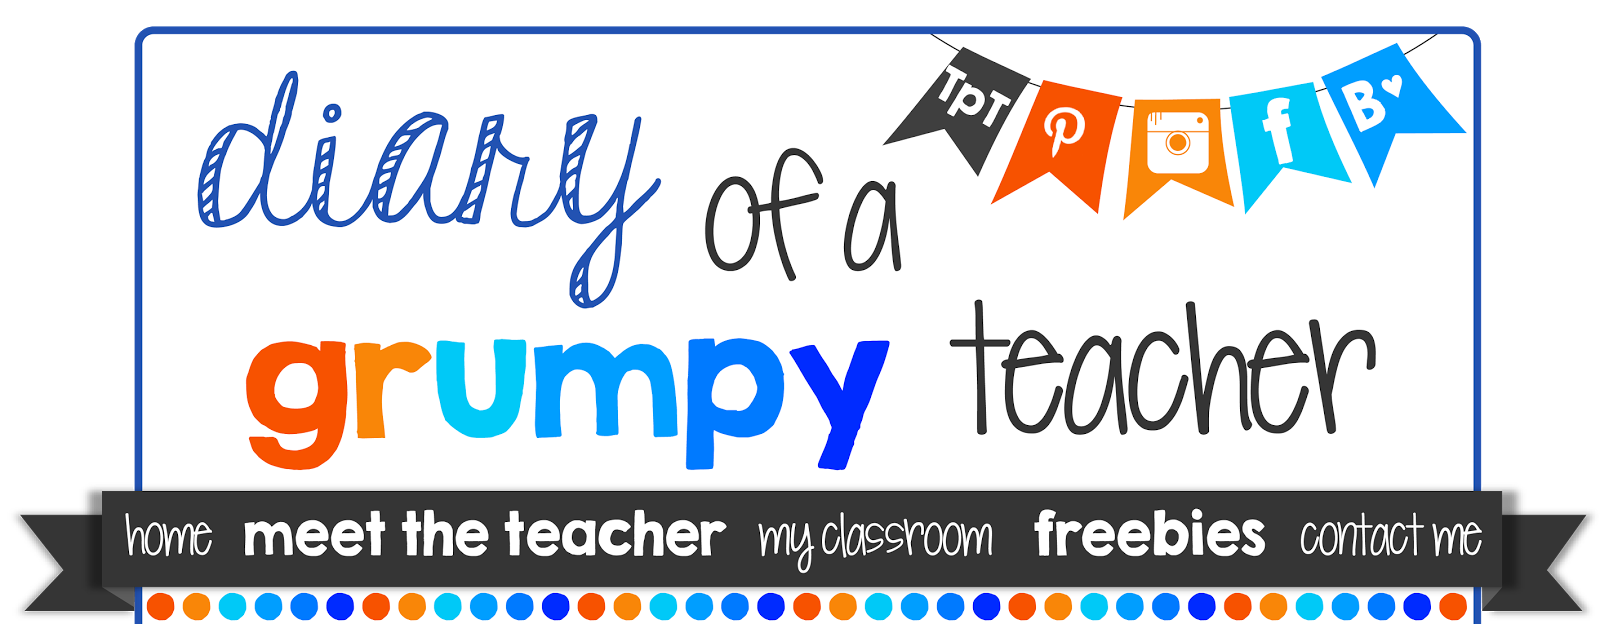 Diary of a Grumpy Teacher Chocolate Fever by Robert Kimmel Smith – Chocolate Fever Worksheets